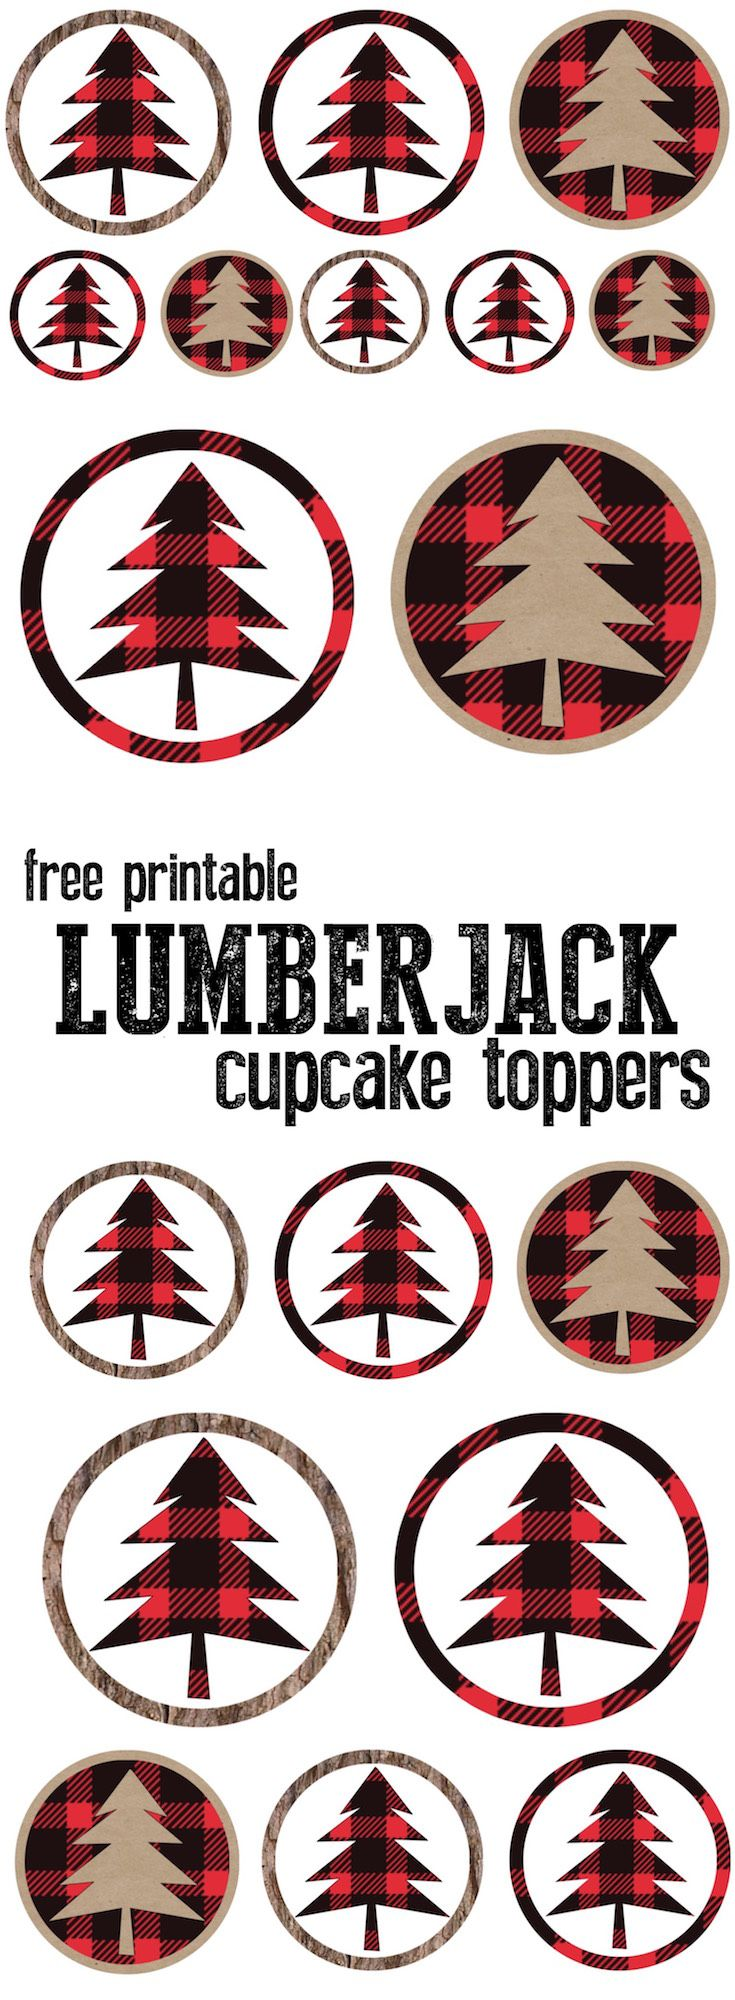 Lumberjack cupcake toppers free printable for your lumberjack themed birthday party or baby shower. Add easy decor to your party.